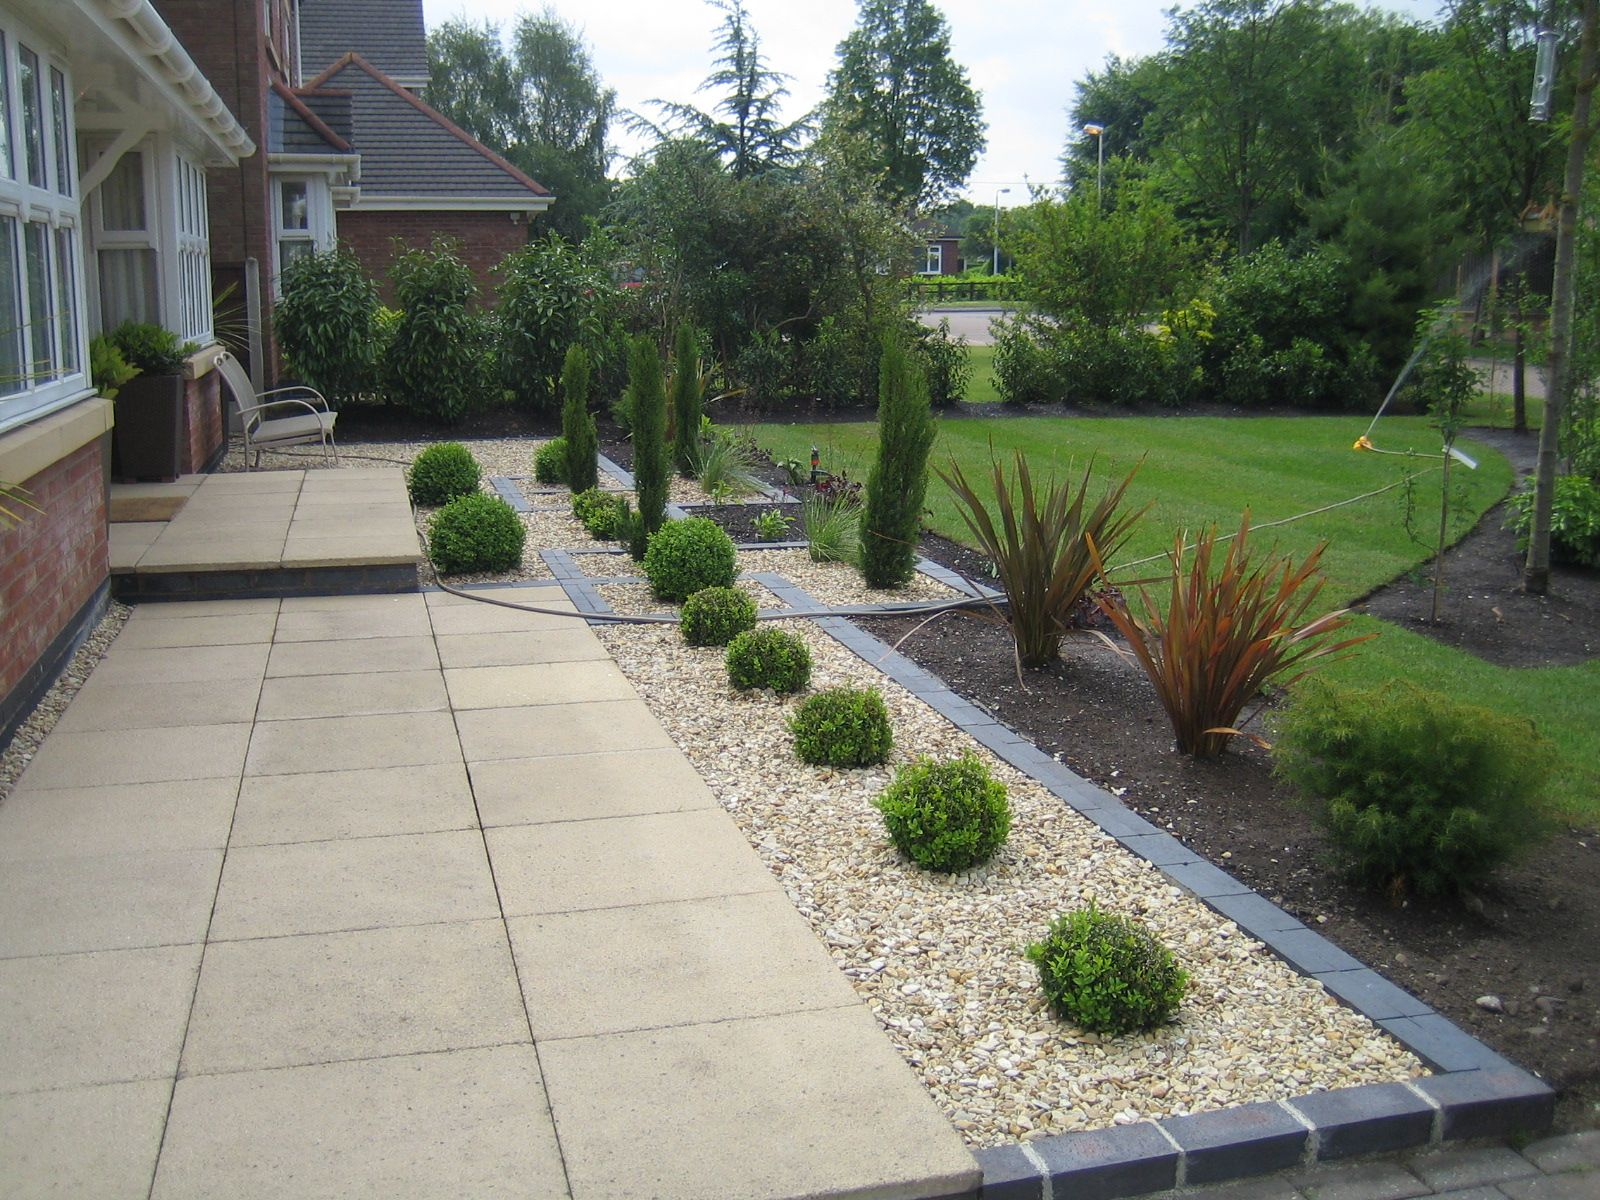 Pin by sue davis on hard landscaping materials and ideas for Hard landscaping ideas